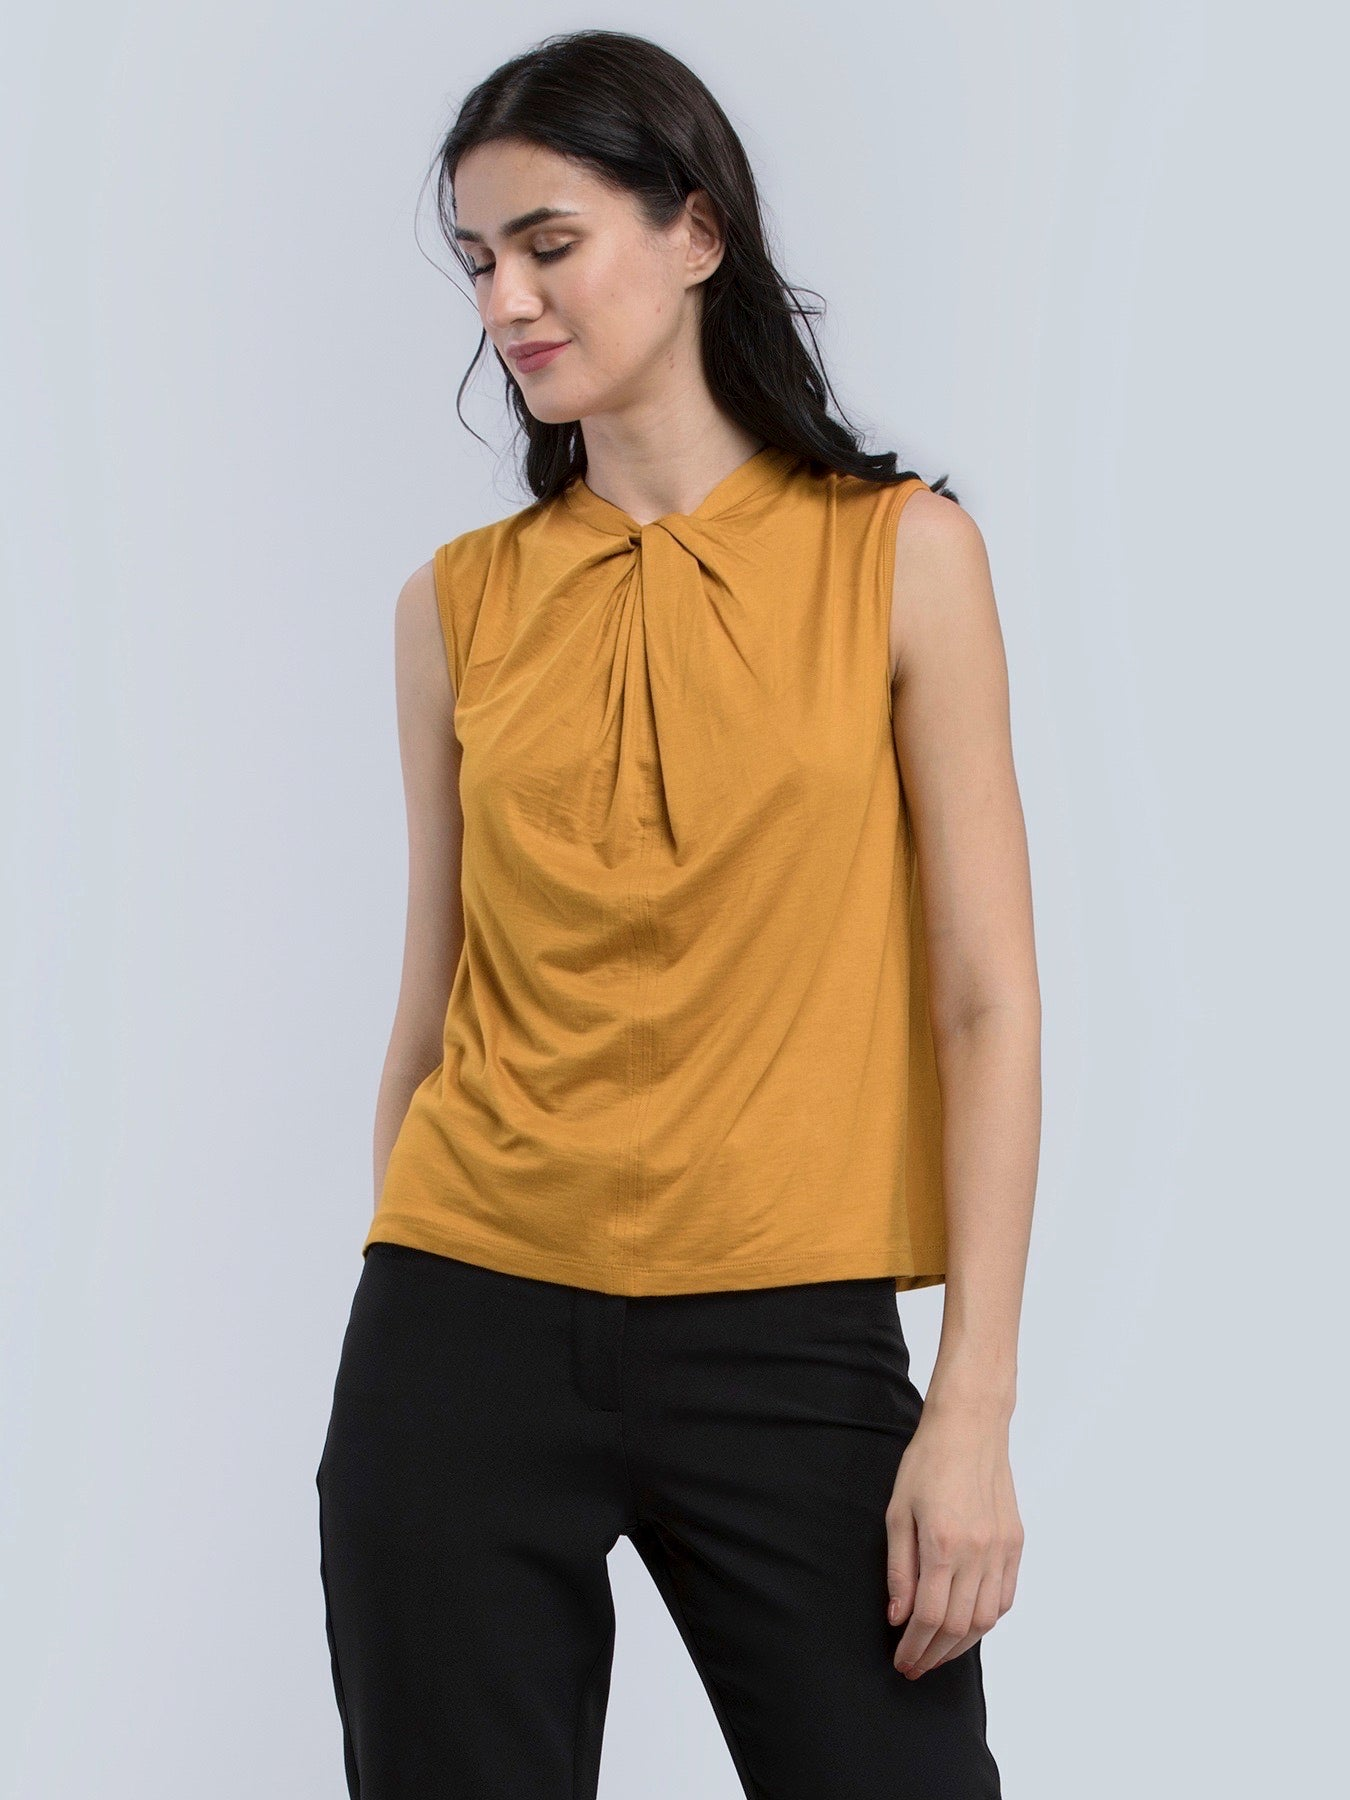 Cotton High Neck Twist Detail Knitted Top - Mustard